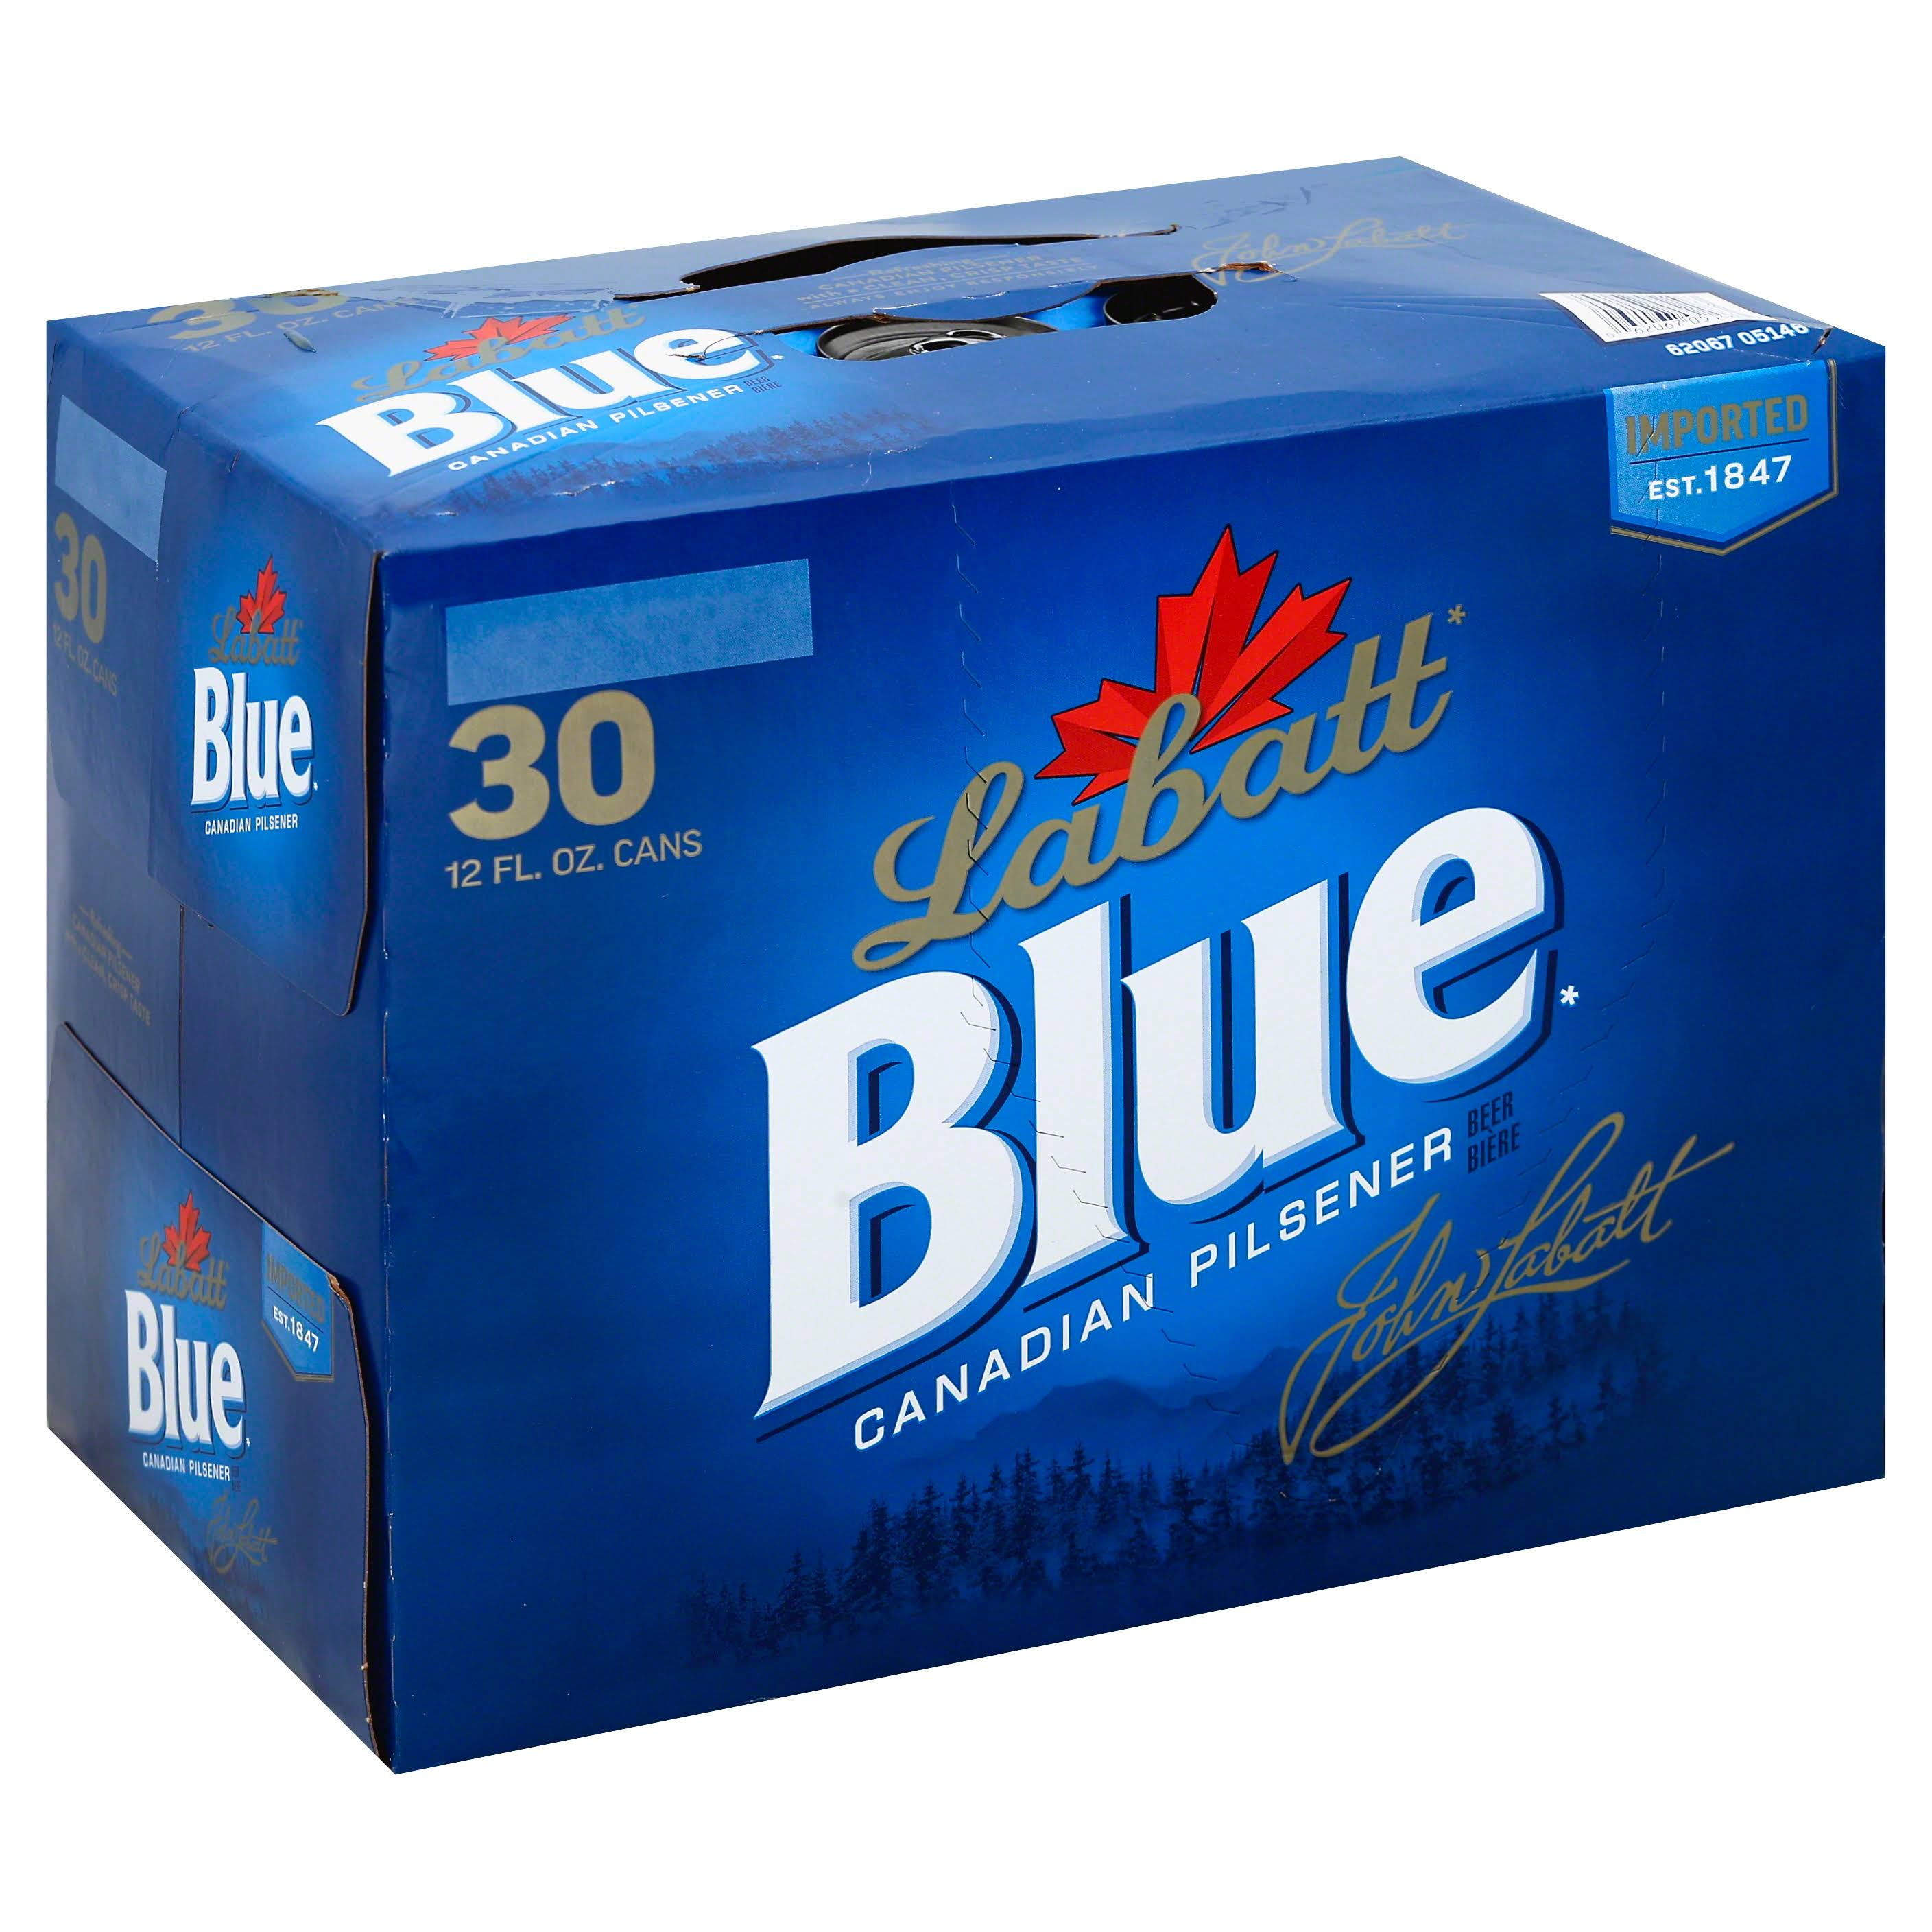 Labatt Blue Canadian Pilsener Beer - 12oz, 30 Count